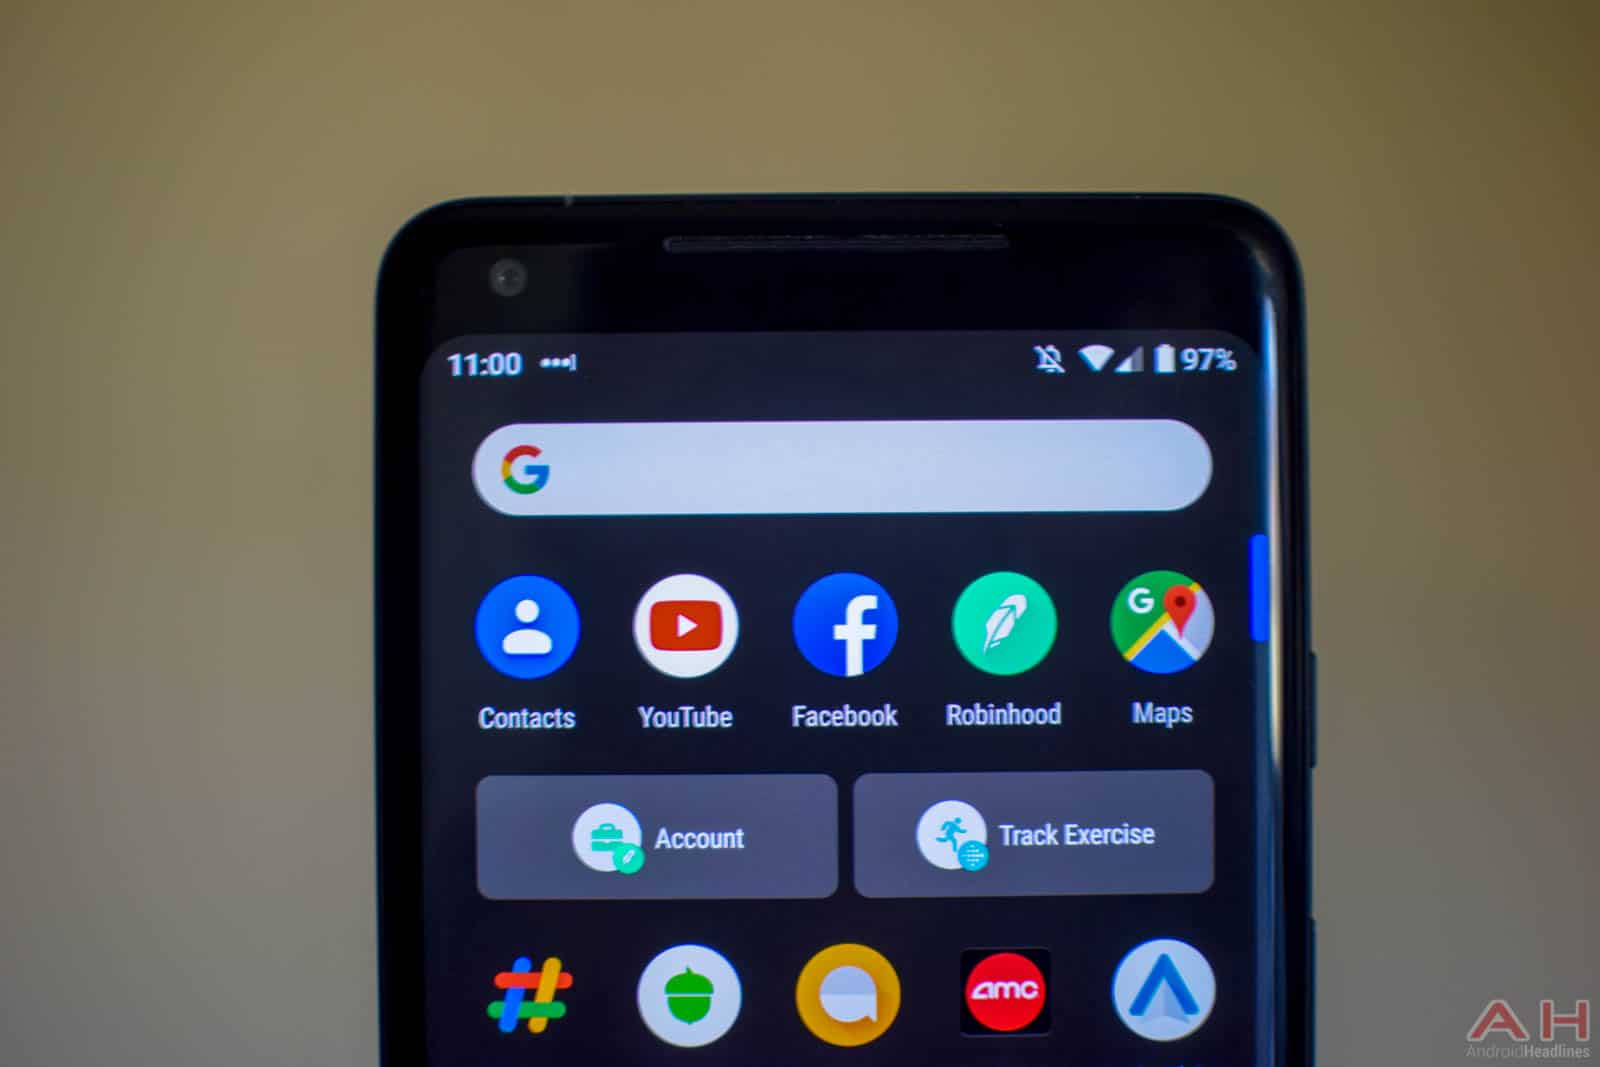 Best Car For Uber >> Android 9 Pie: What Are App Actions & How To Use Them | Android News